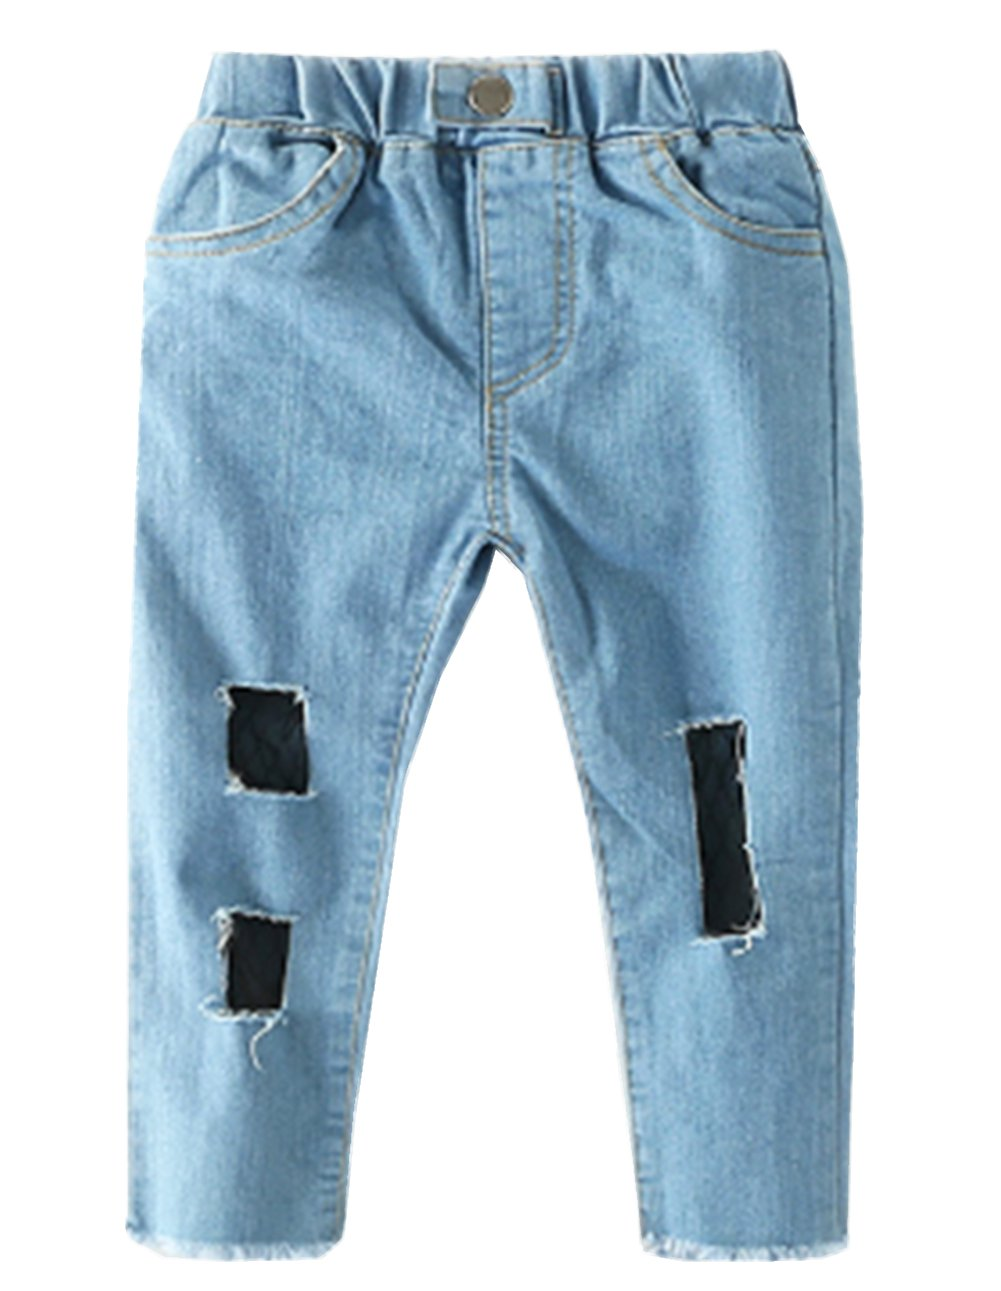 stylesilove Chic and Fun Girls Skinny Jeans with Mesh Lining (100/3-4 Years)